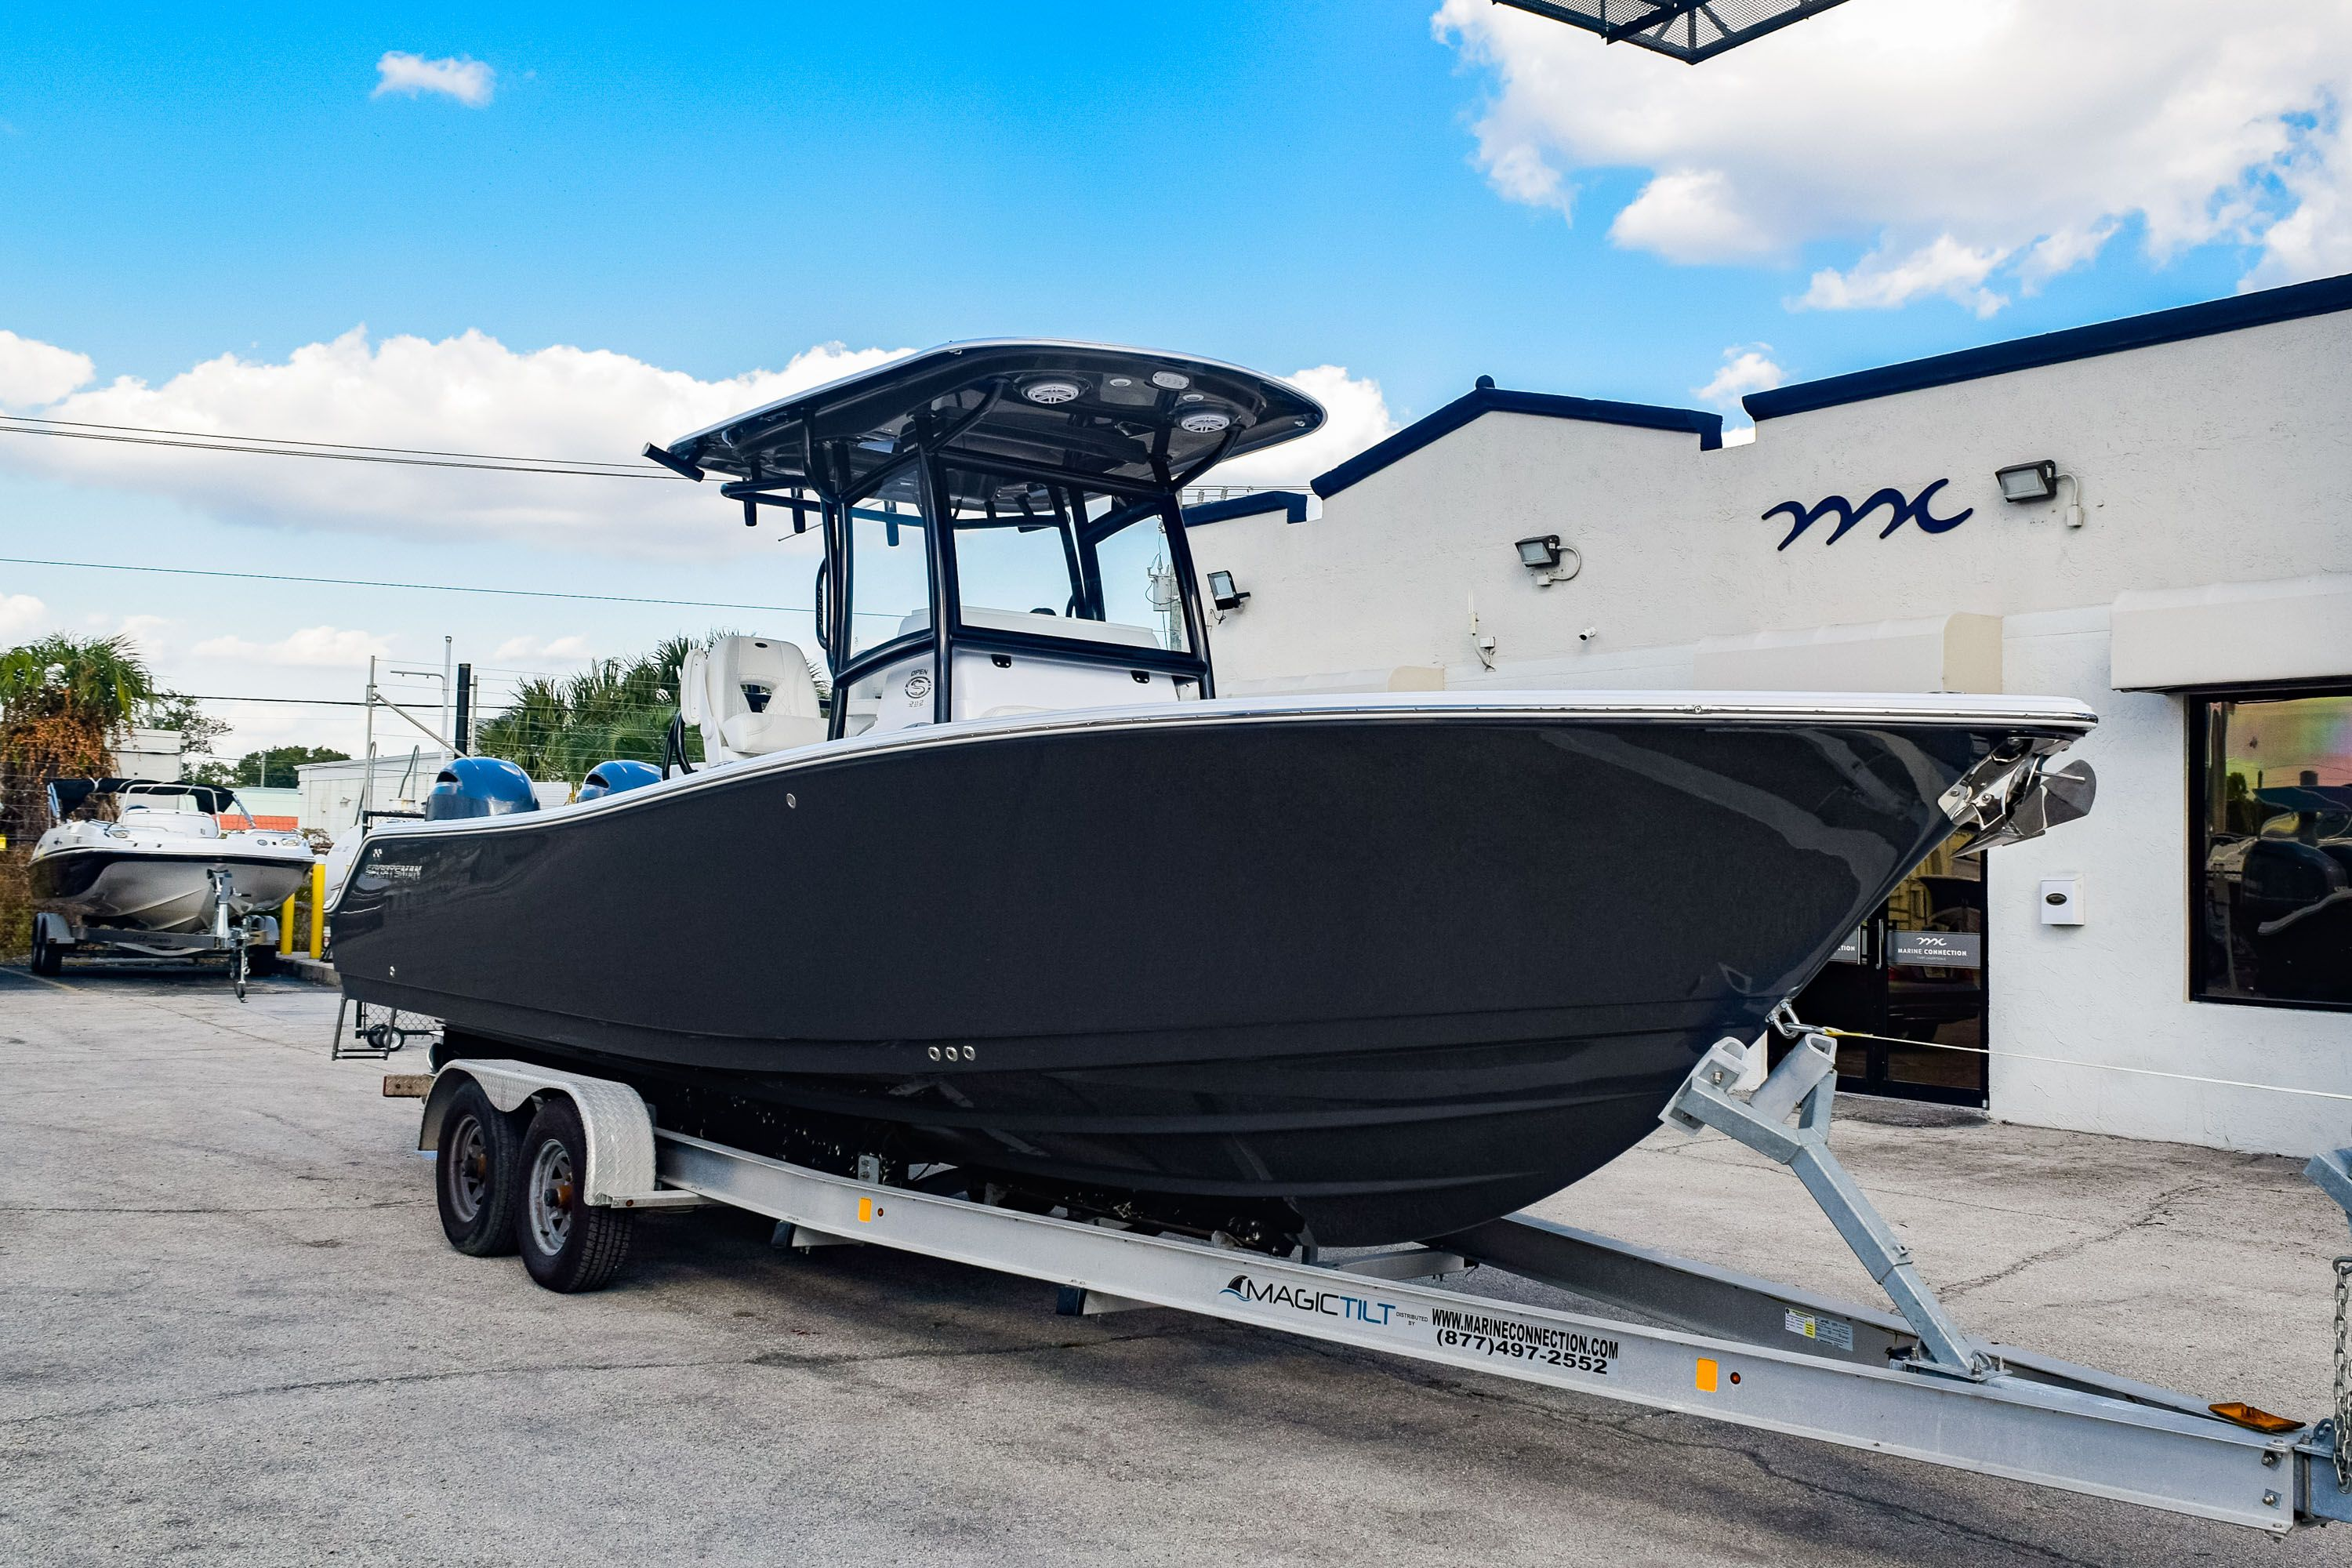 Thumbnail 1 for New 2020 Sportsman Open 282 Center Console boat for sale in Fort Lauderdale, FL